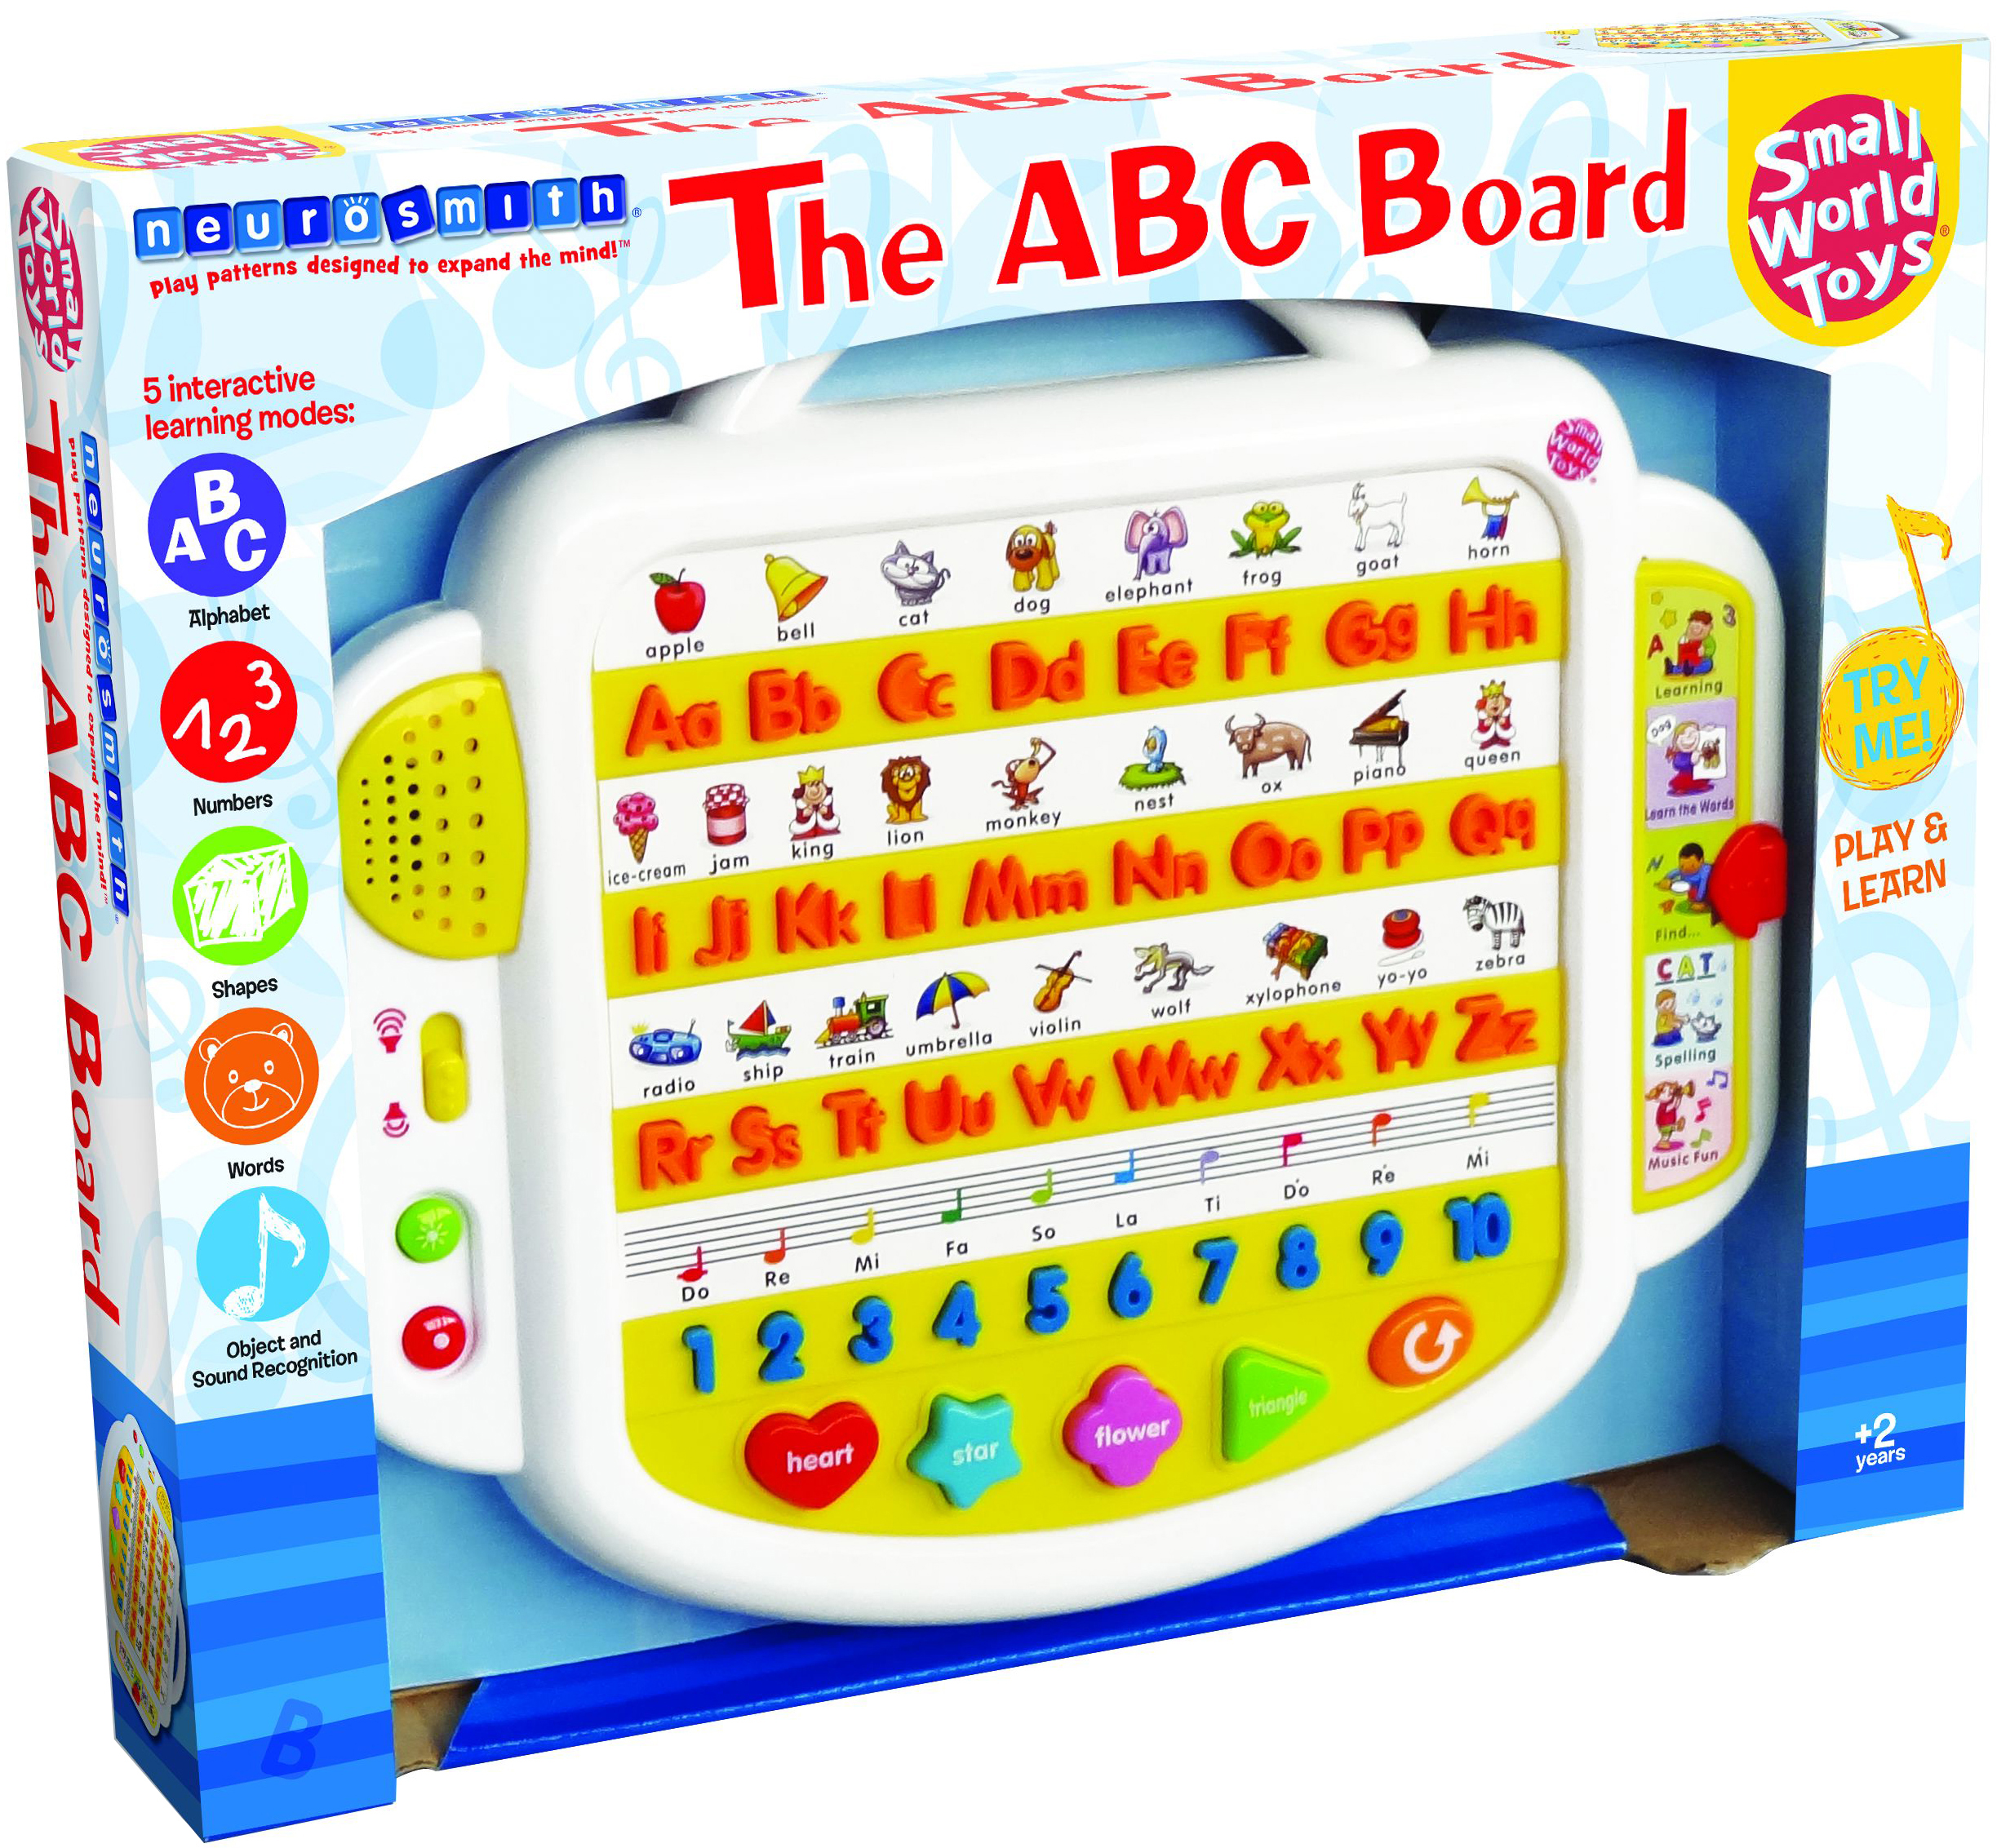 Small World Toys Alphabet Keyboard-The ABC Board by Small World Toys